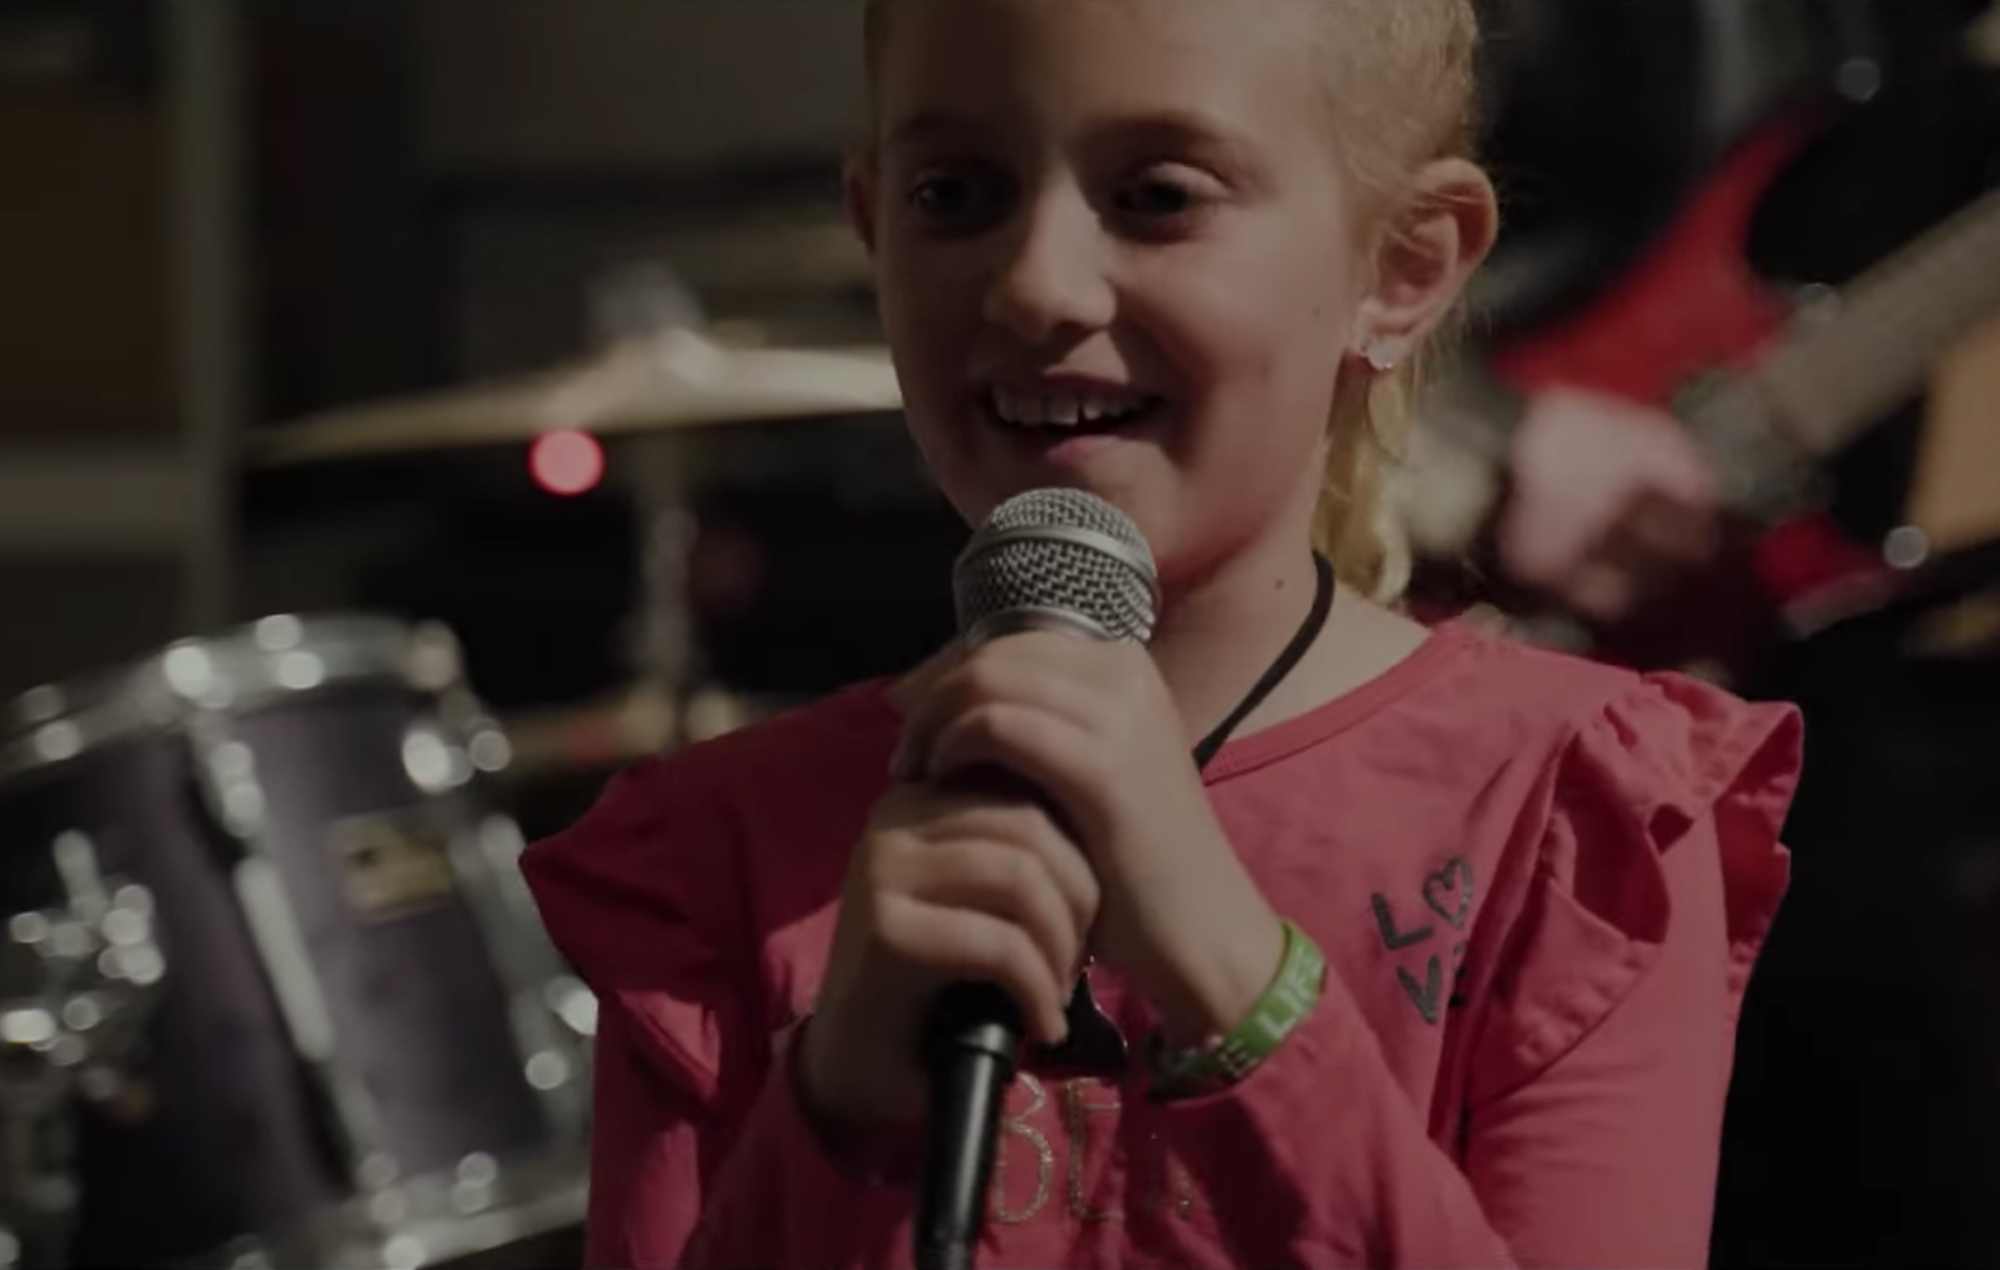 Watch these kids' killer cover of 'The Devil in I' by Slipknot